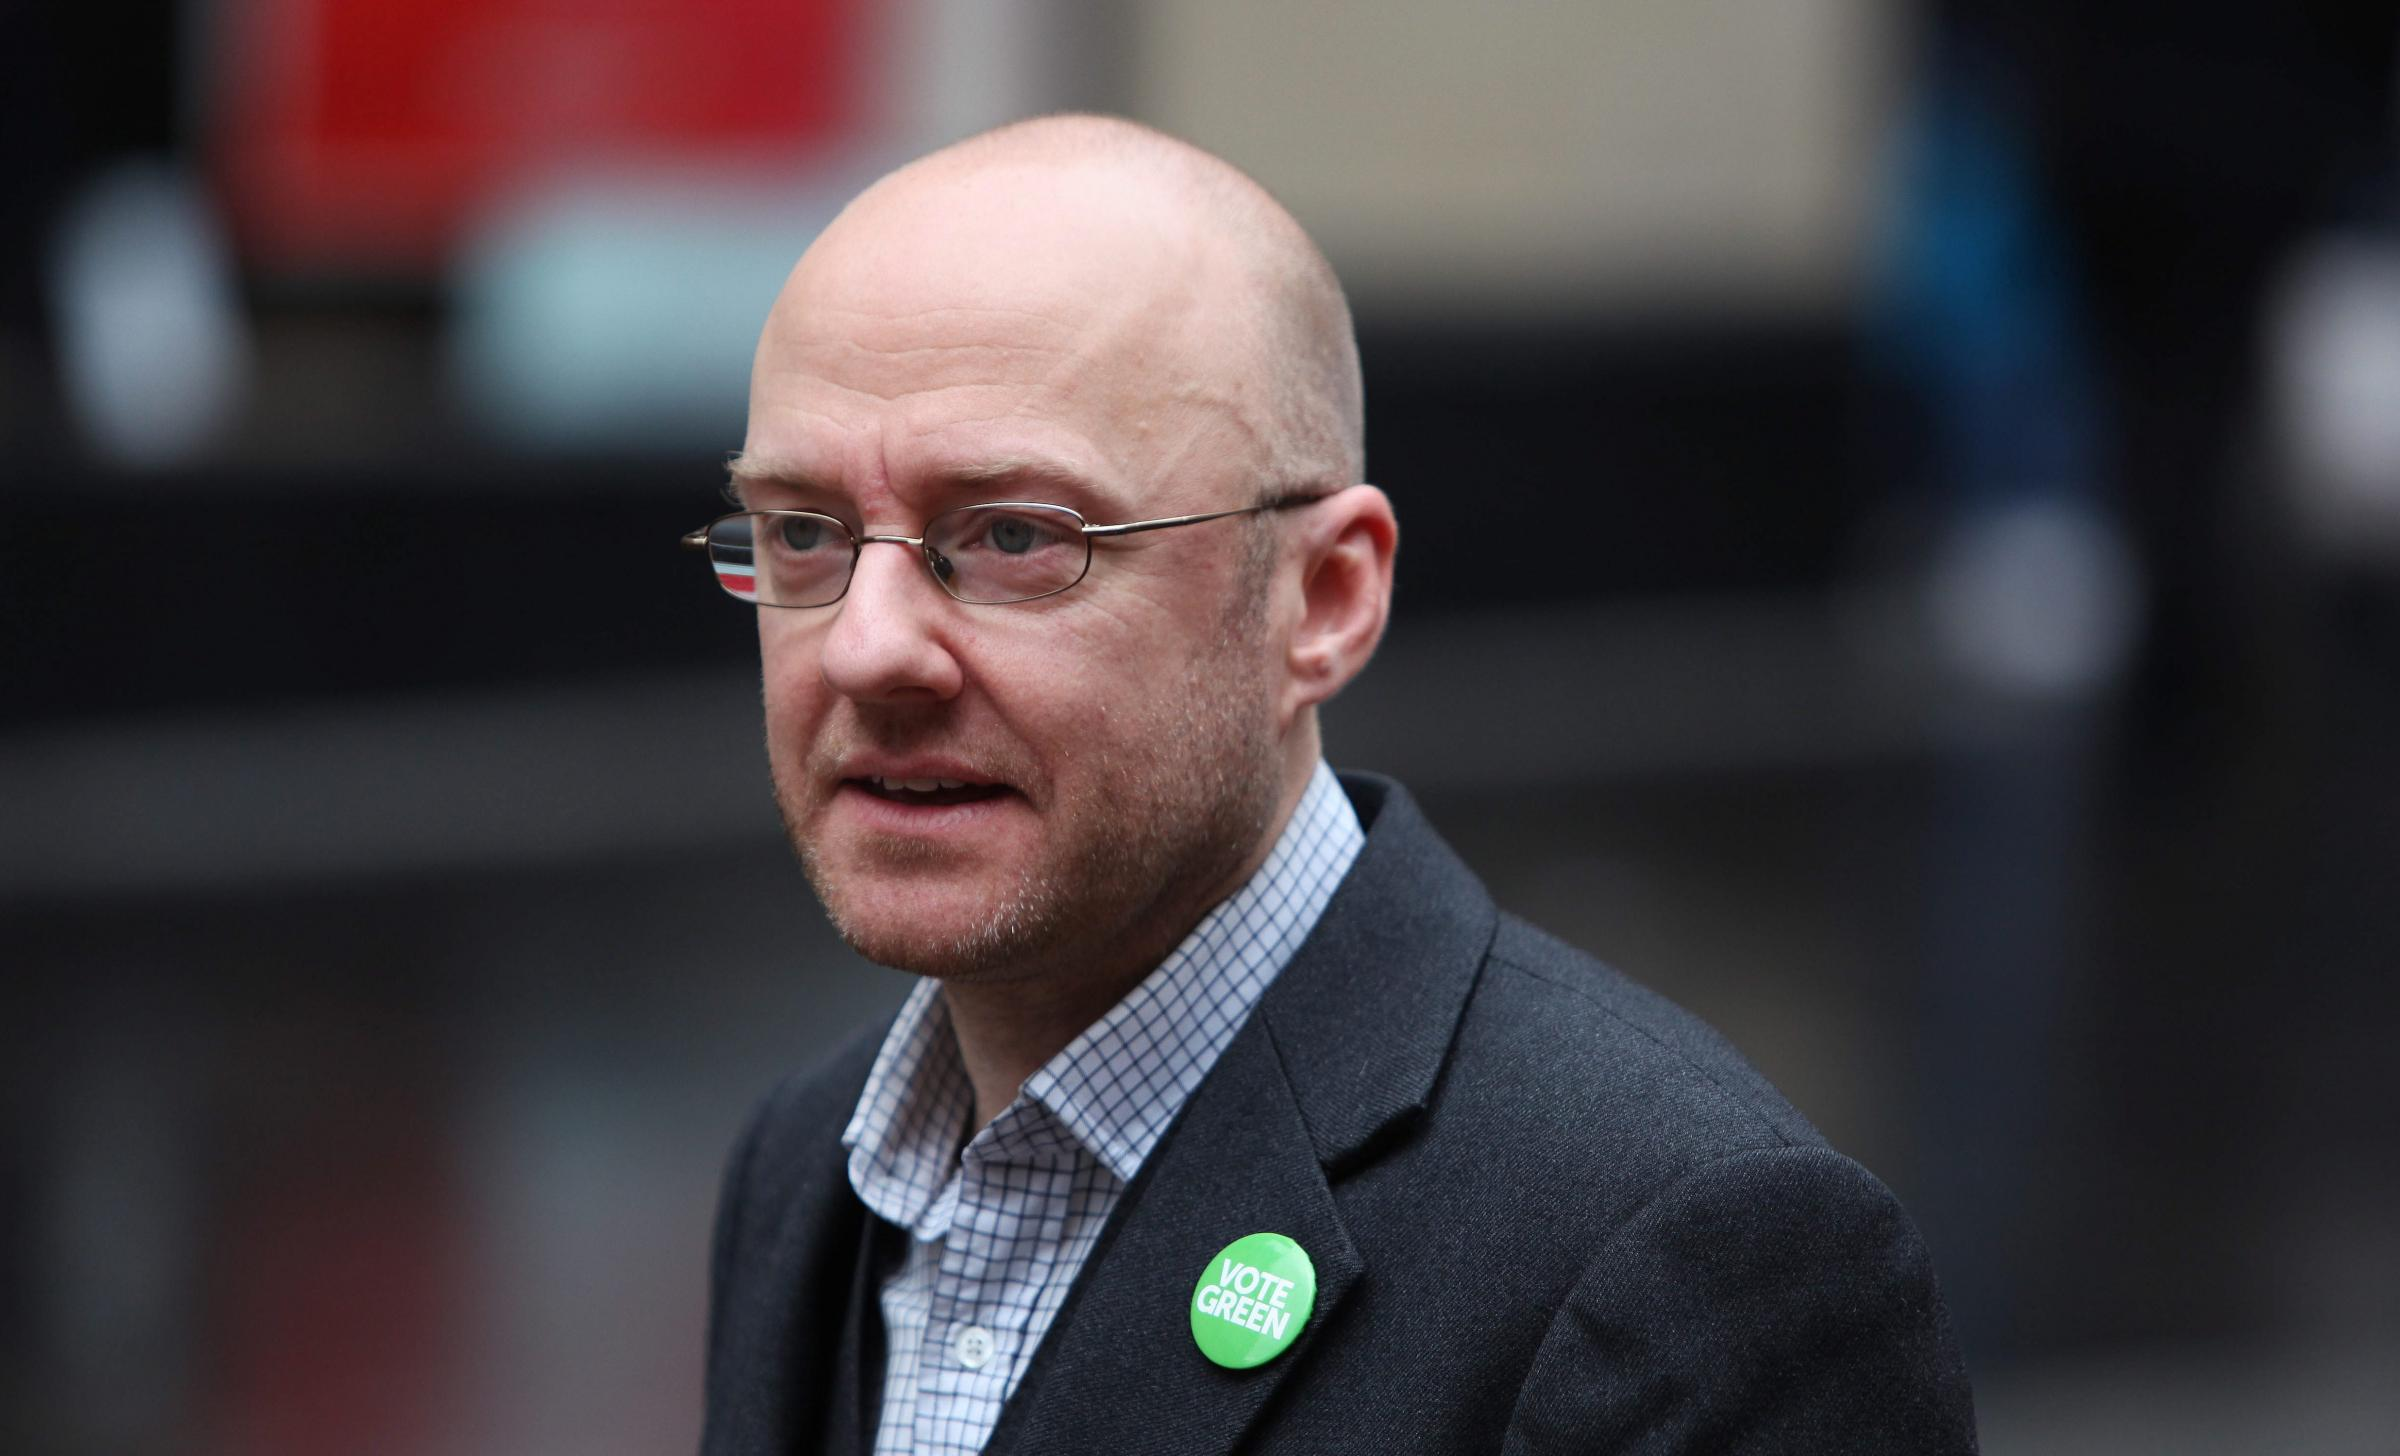 Patrick Harvie will address a meeting of EU nationals and Green supporters